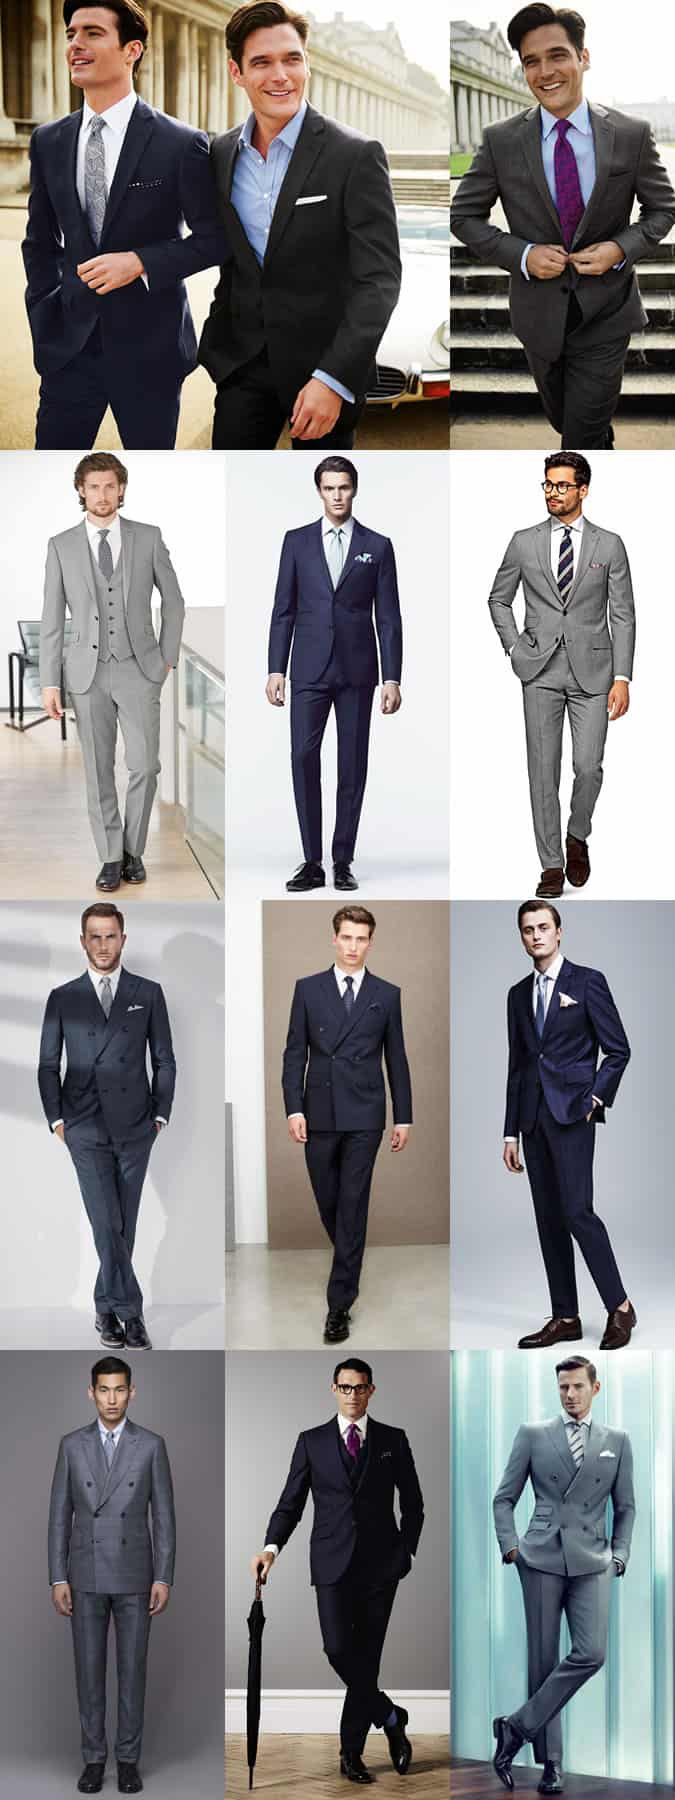 Men's Classic Spring Suits Outfit Inspiration Lookbook